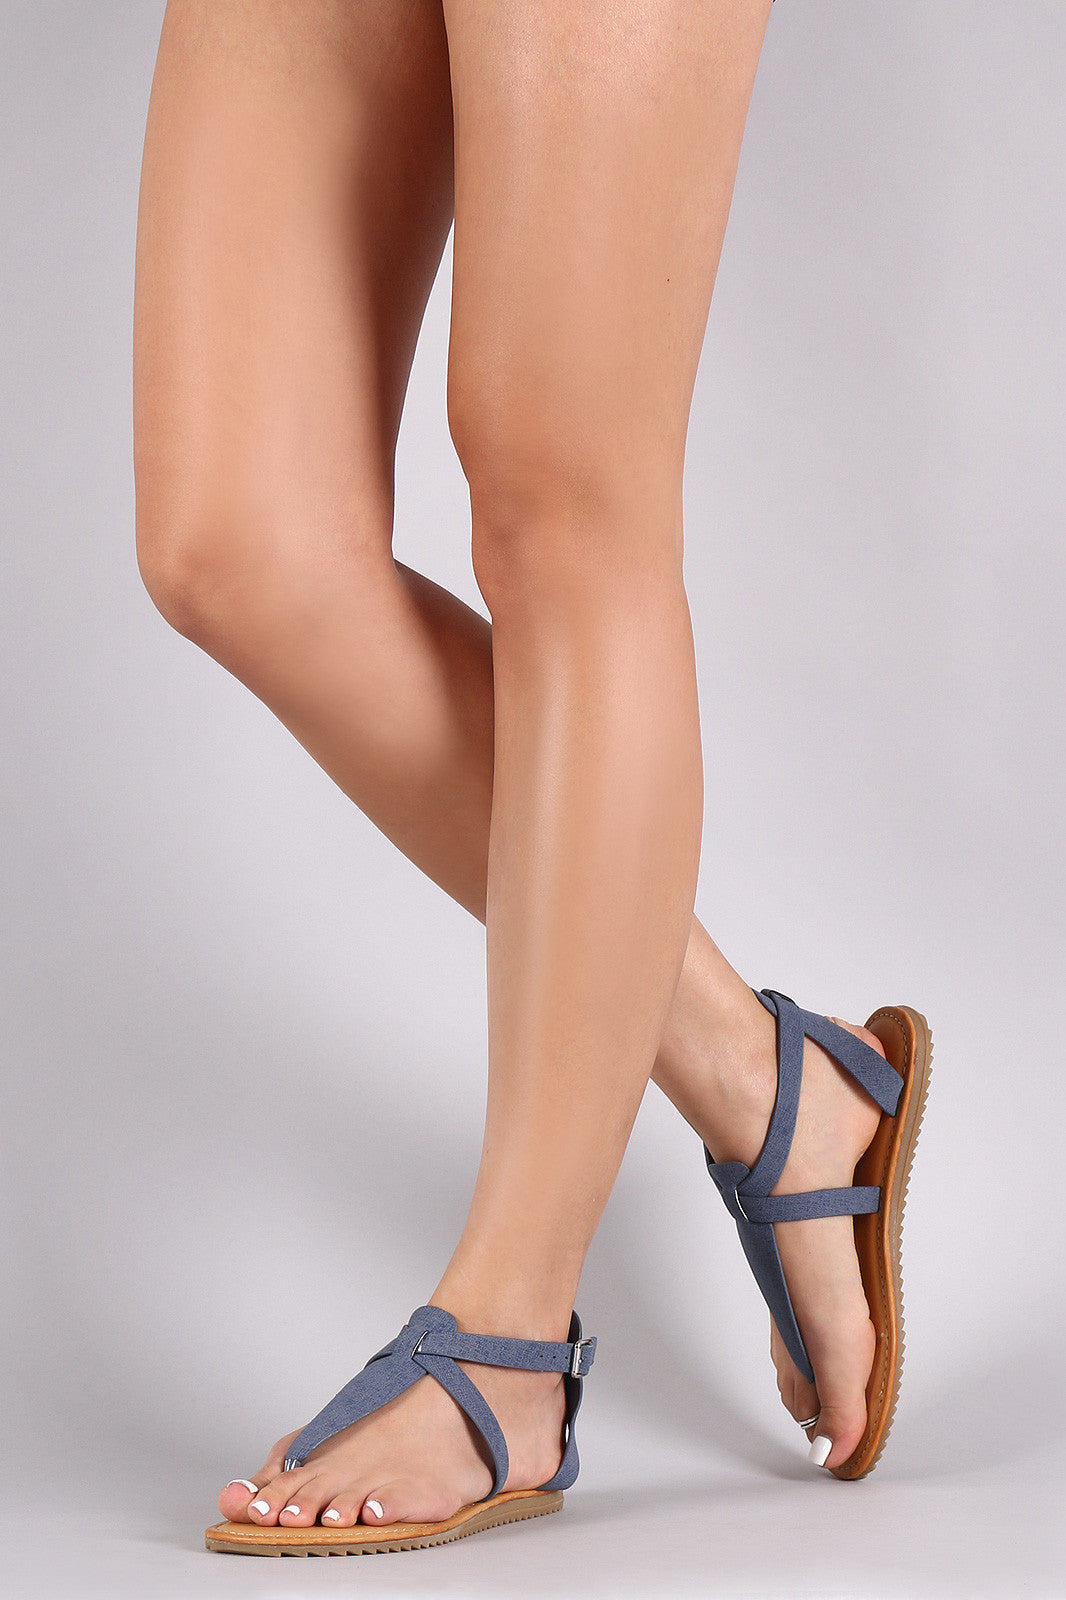 Bamboo Nubuck Lug Sole Crisscross Ankle Strap Thong Flat Sandal - Thick 'N' Curvy Shop - 8